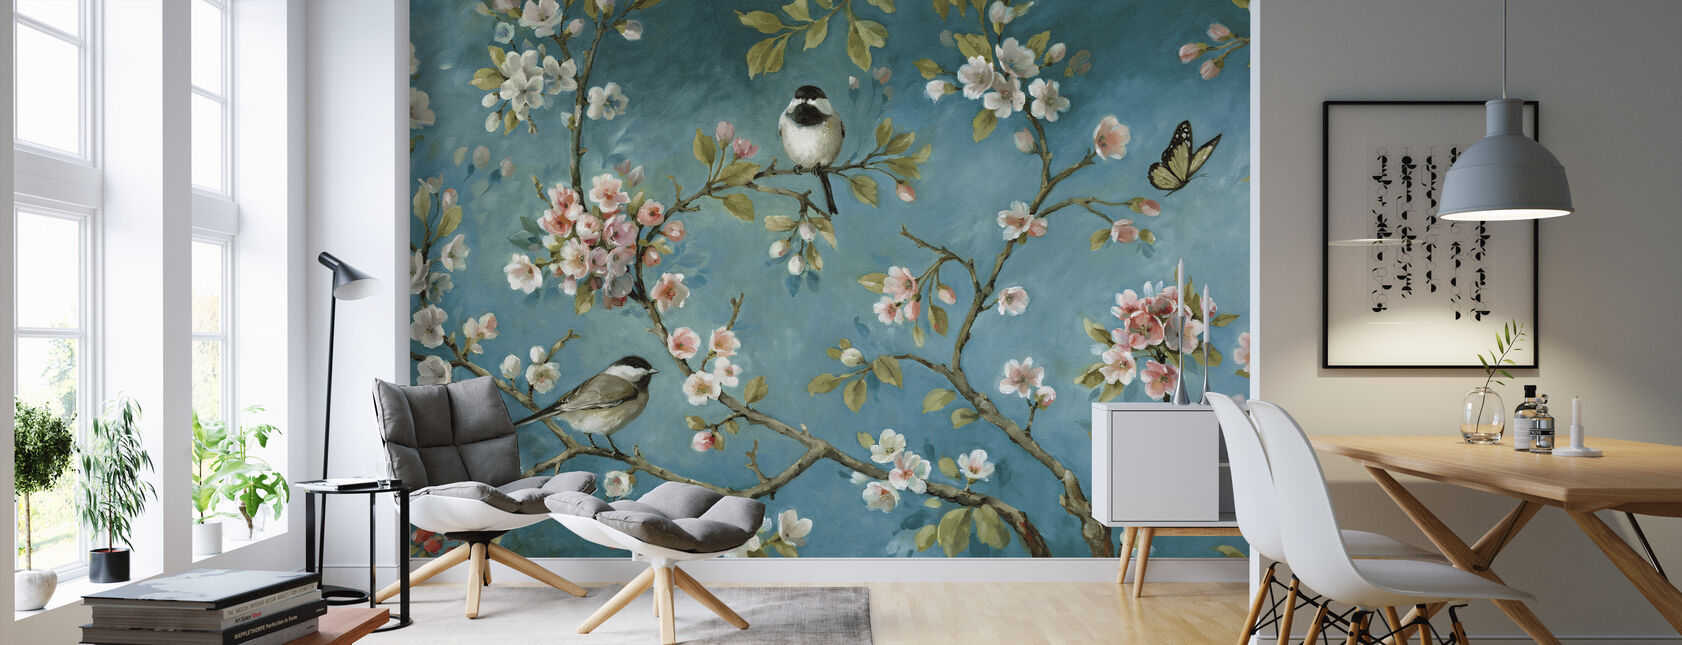 Blossom - Wallpaper - Living Room